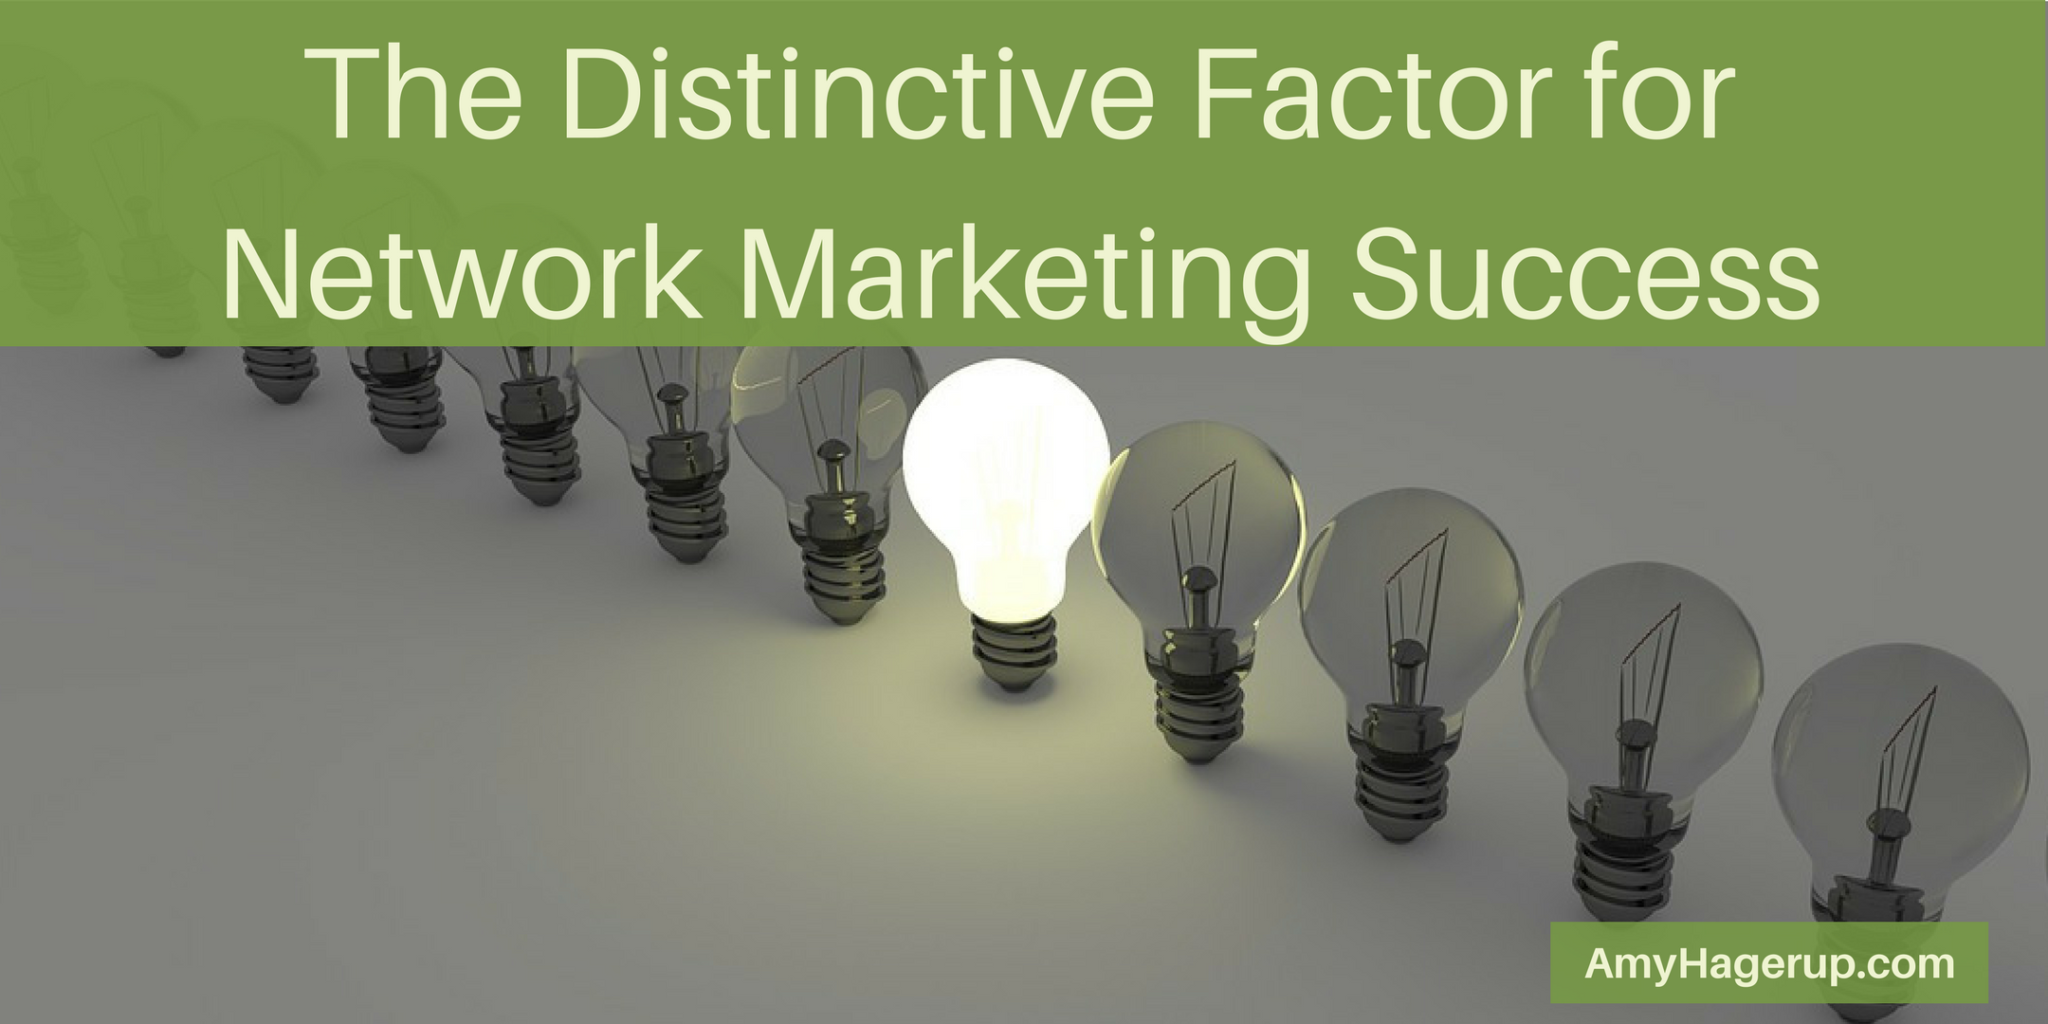 Check out the differentiating factor needed for network marketing success.